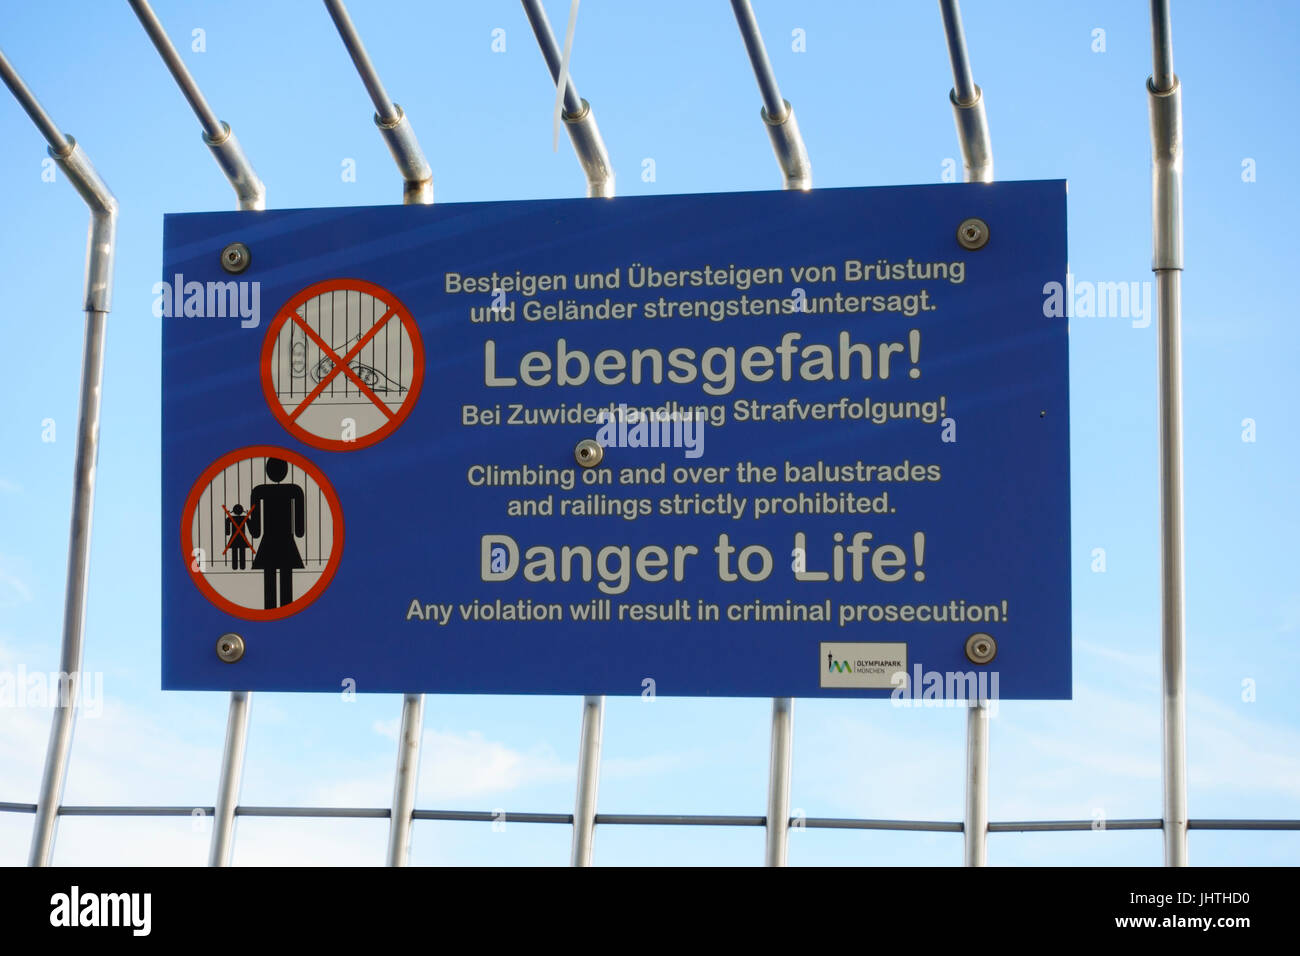 Warning sign inside the viewing platform, Olympic Tower, Olympiapark, Munich, Bavaria, Germany - Stock Image